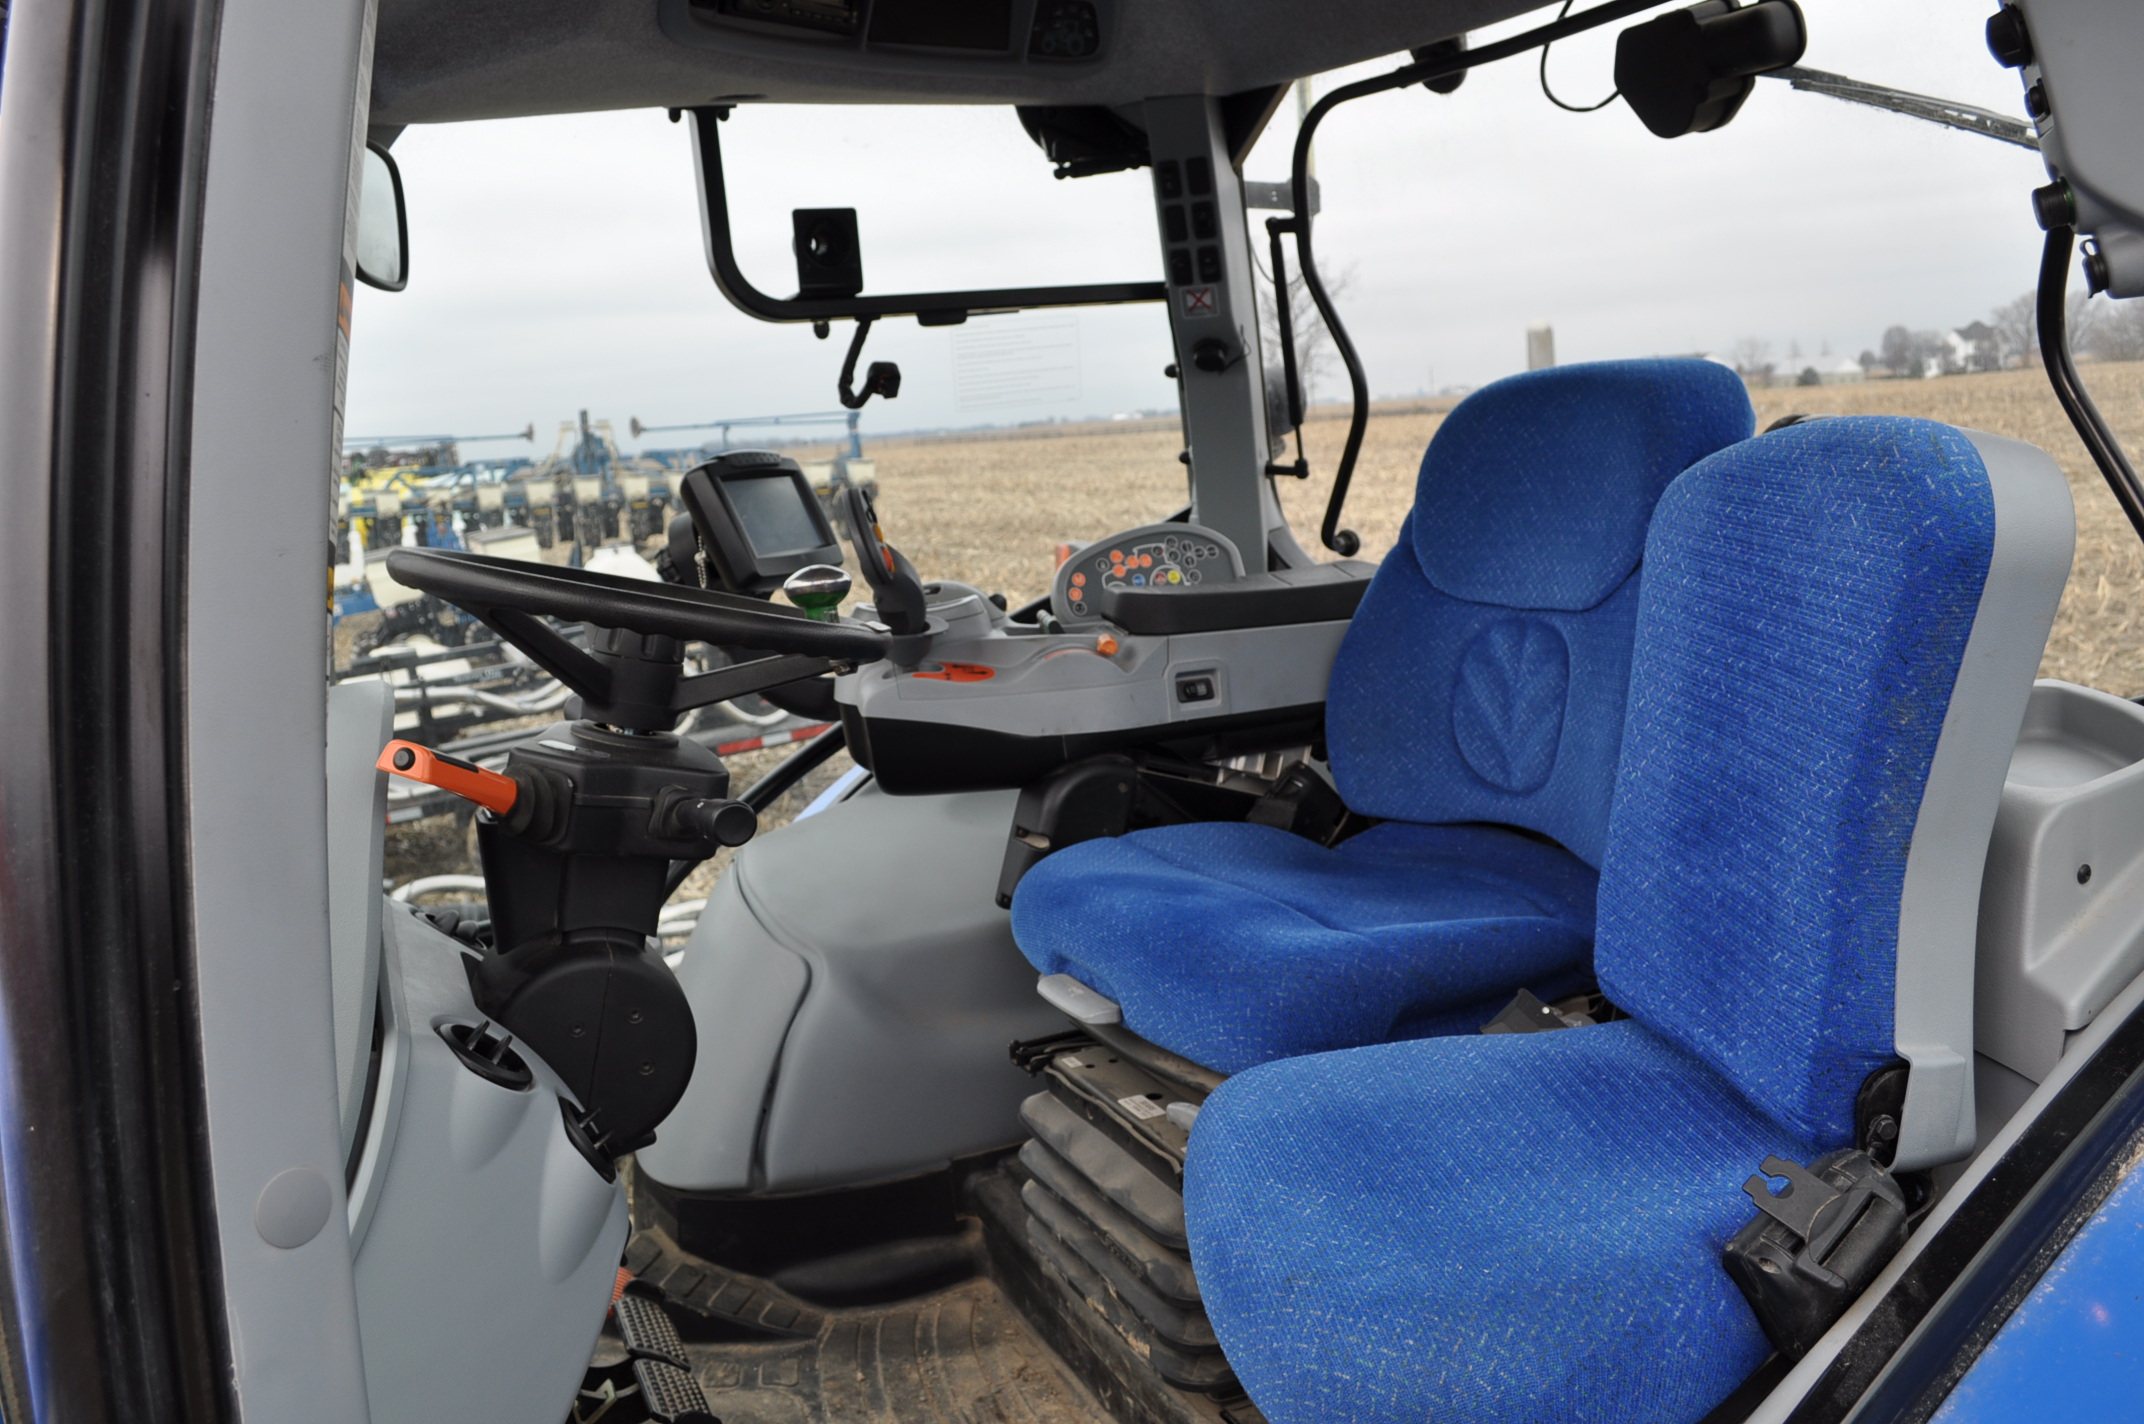 New Holland T7.250 tractor, 480/80 R 46 duals, Michelin 380/85 R 34 front, Super Steer, front wts, - Image 16 of 28